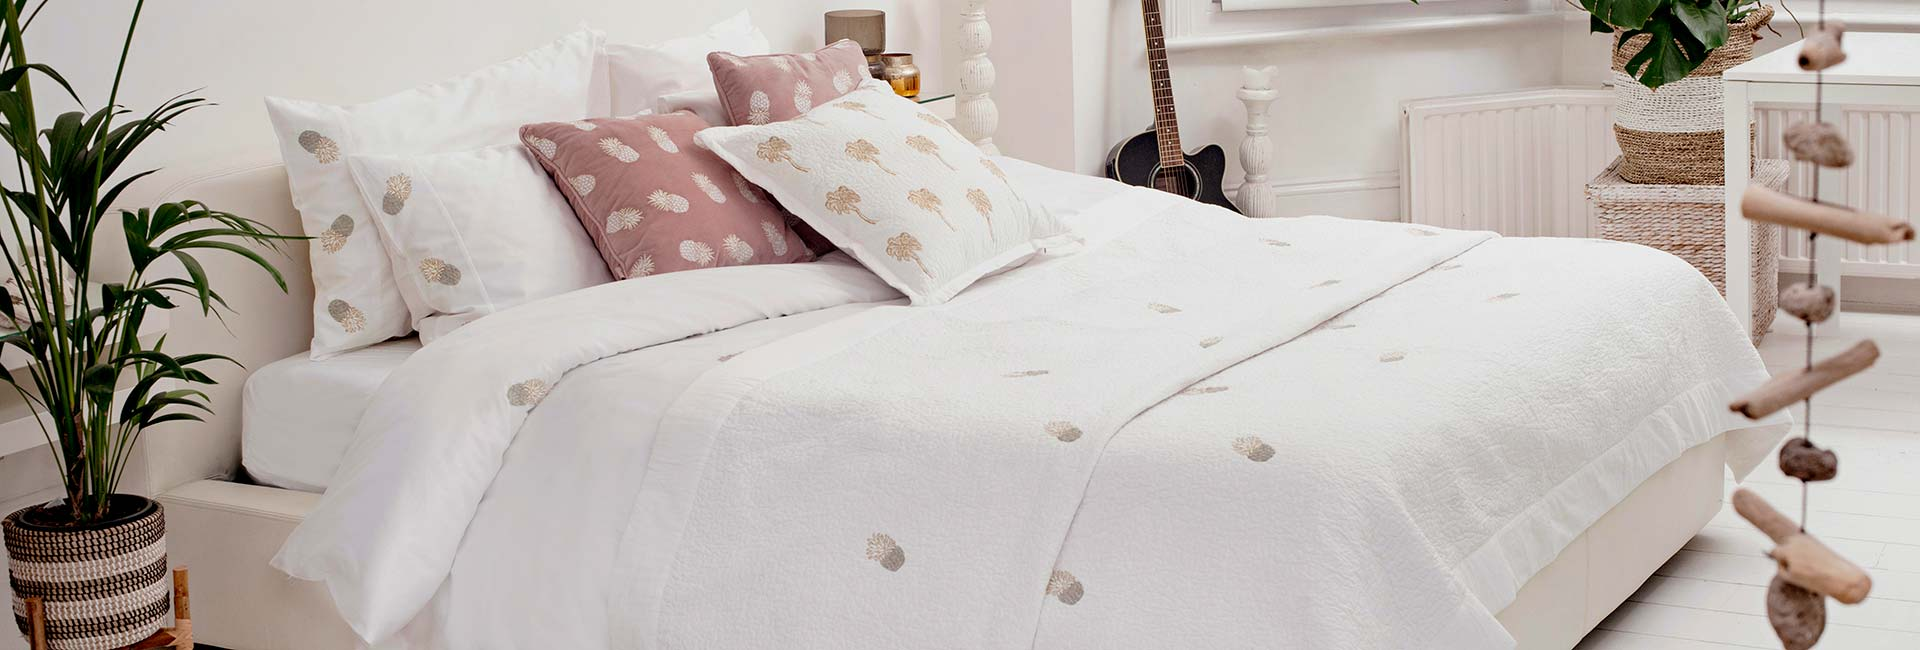 Luxury Bedding for by Elizabeth Scarlett at Dotmaison